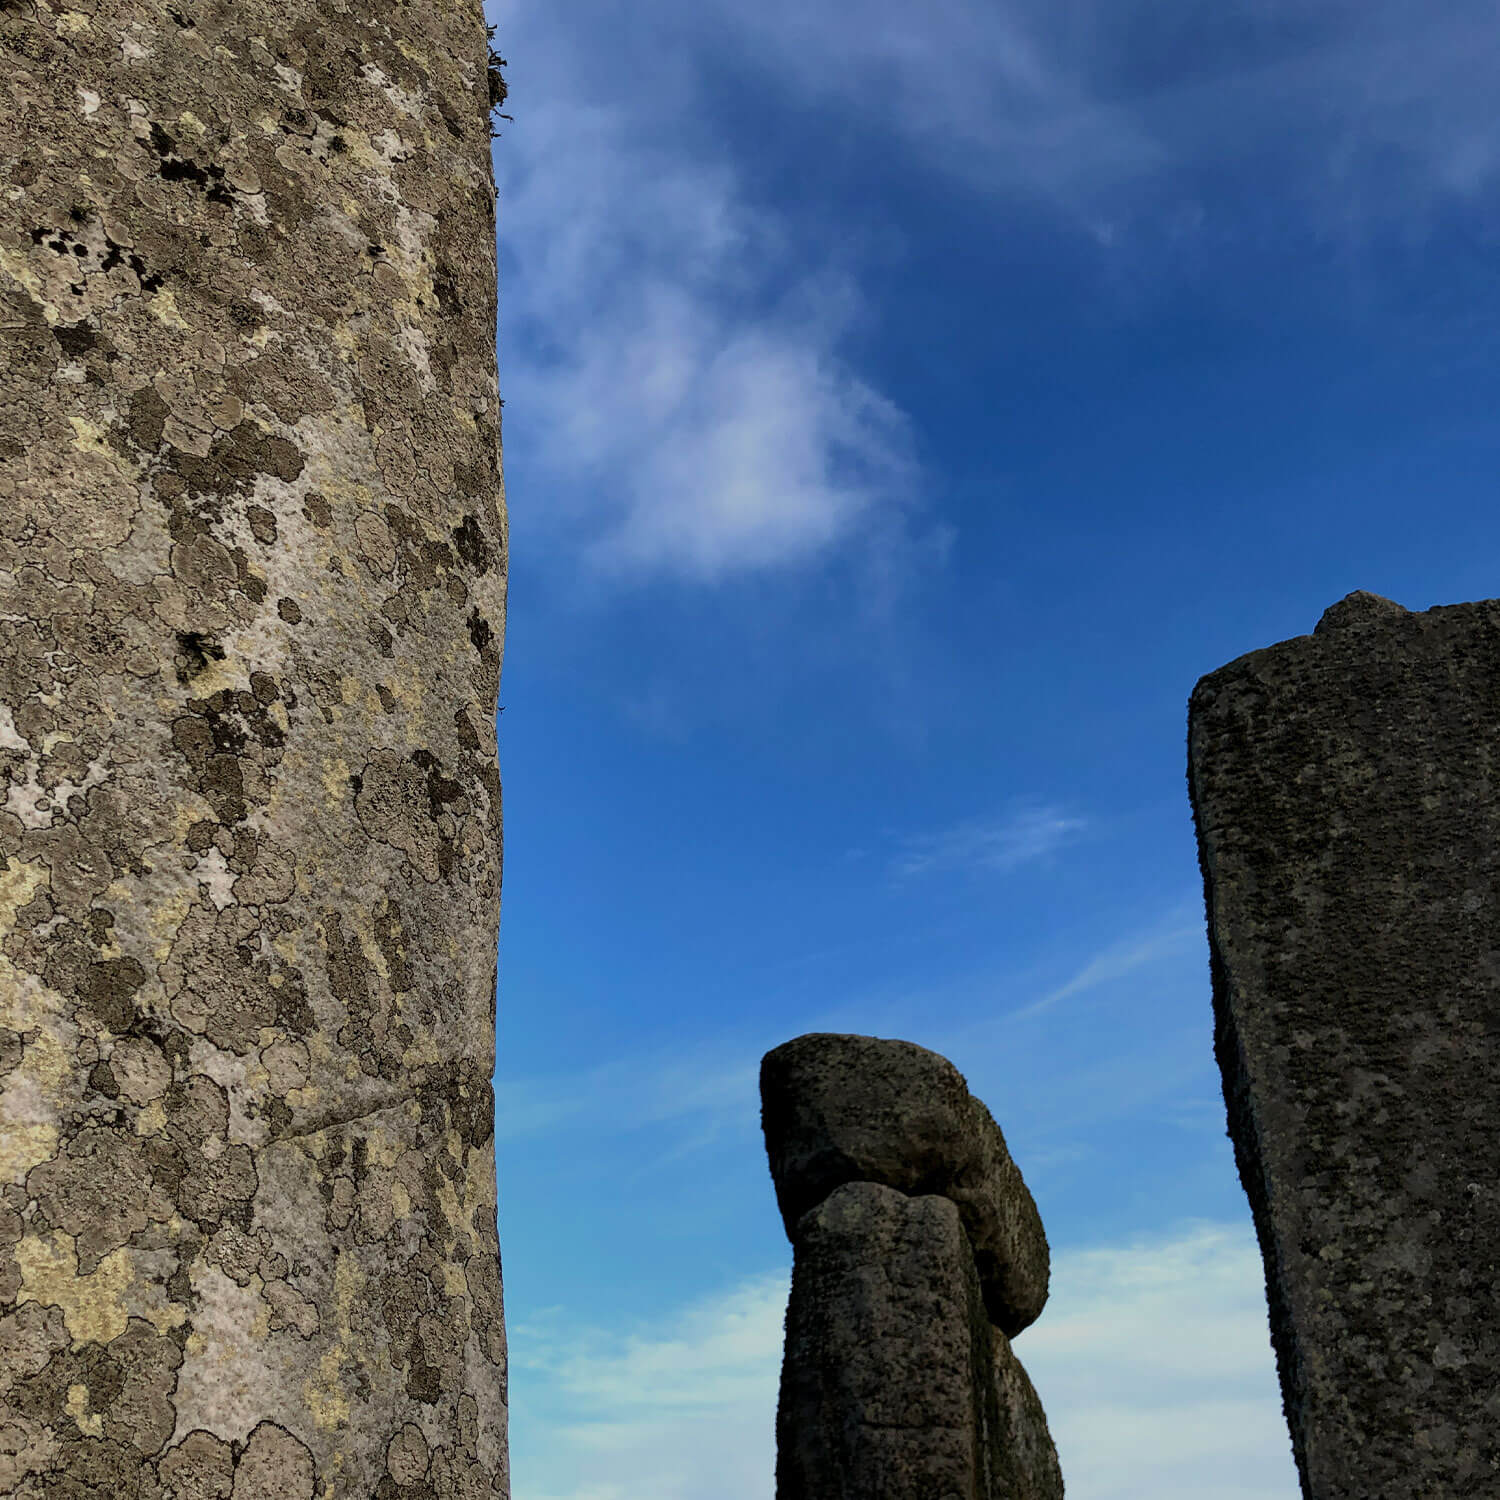 Blue skies above standing stones